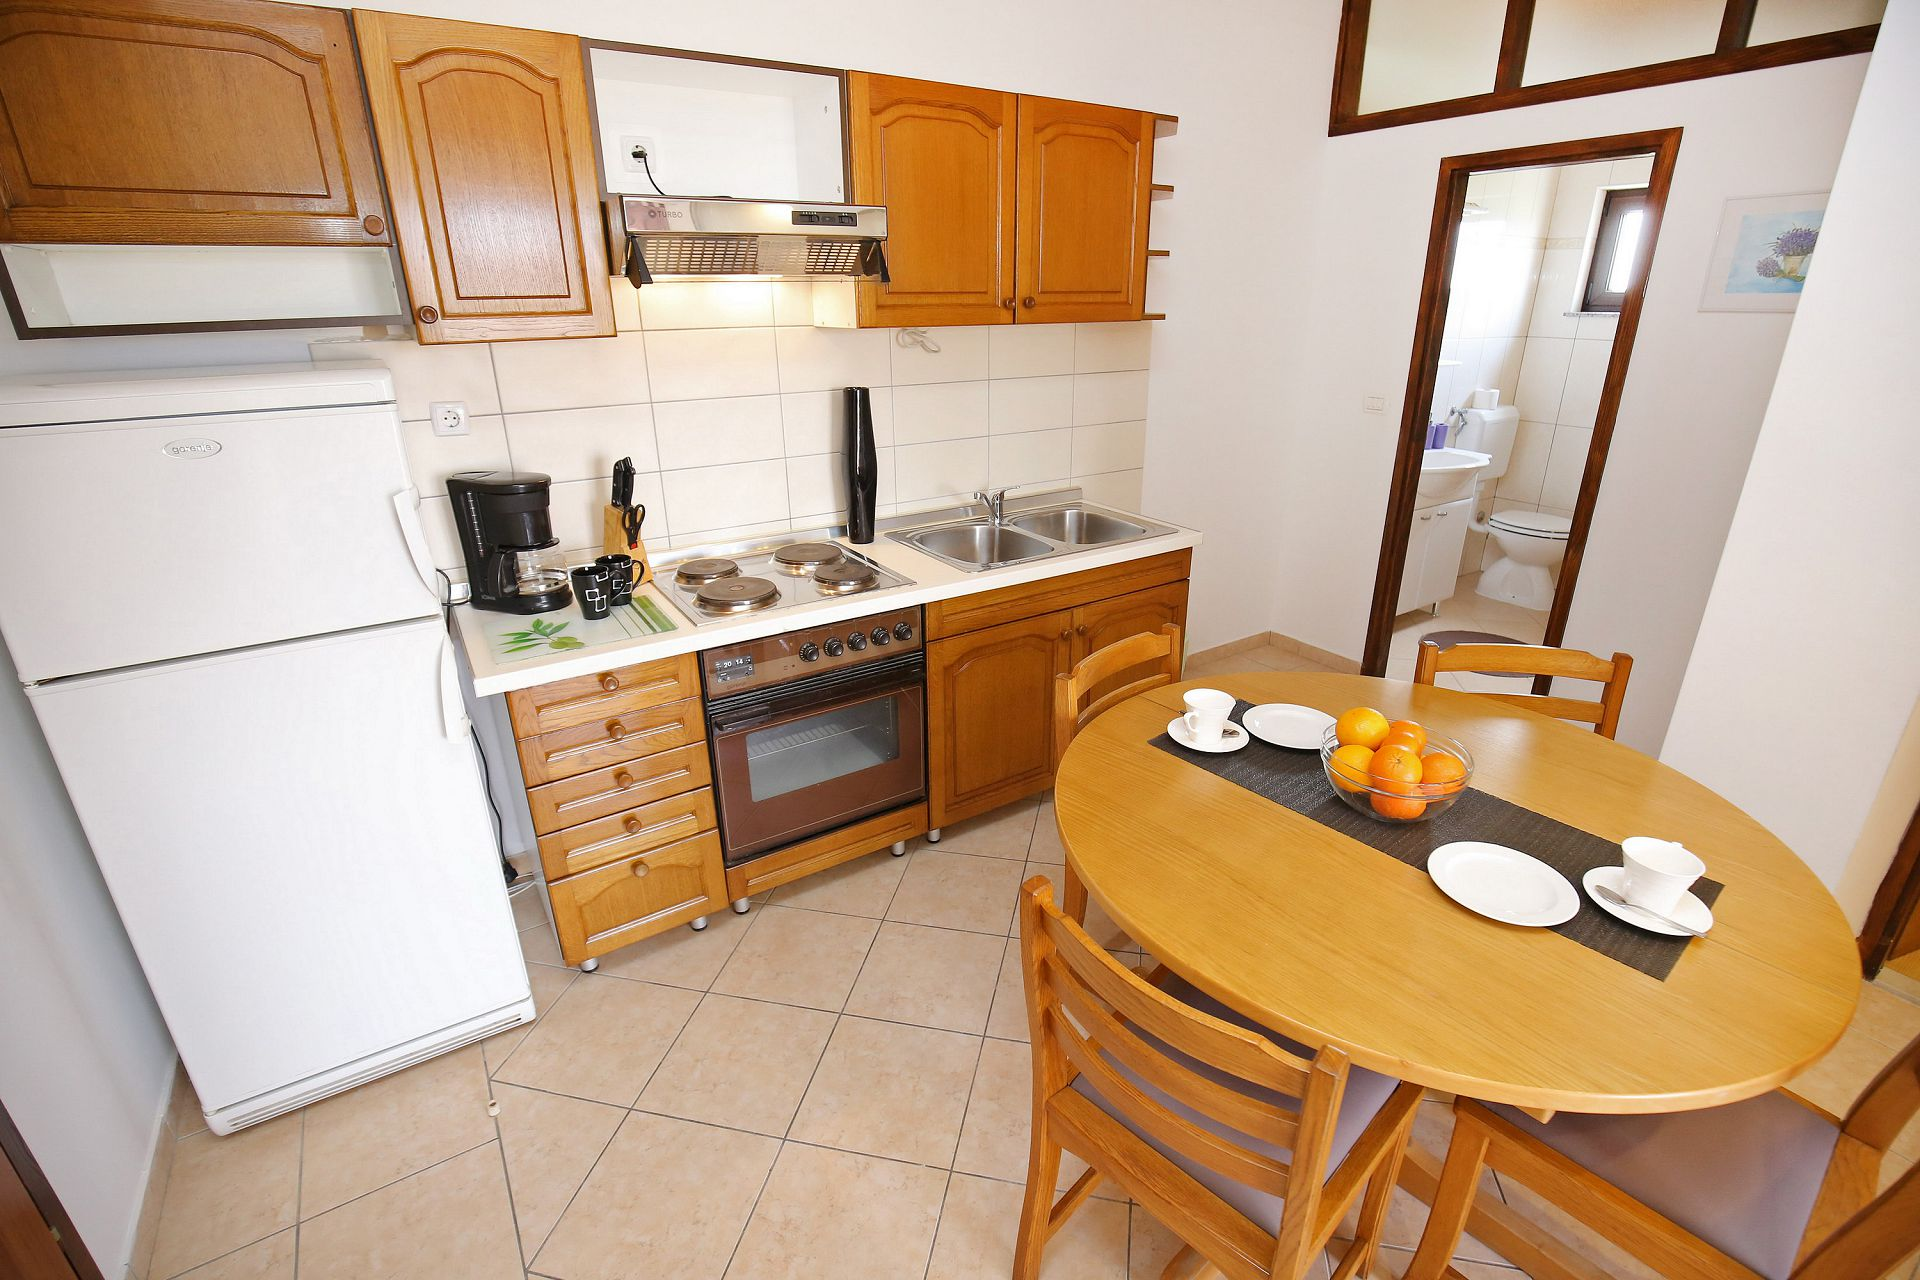 00418ZATZ - Zaton (Zadar) - Apartments Croatia - A3P(2+2): kitchen and dining room